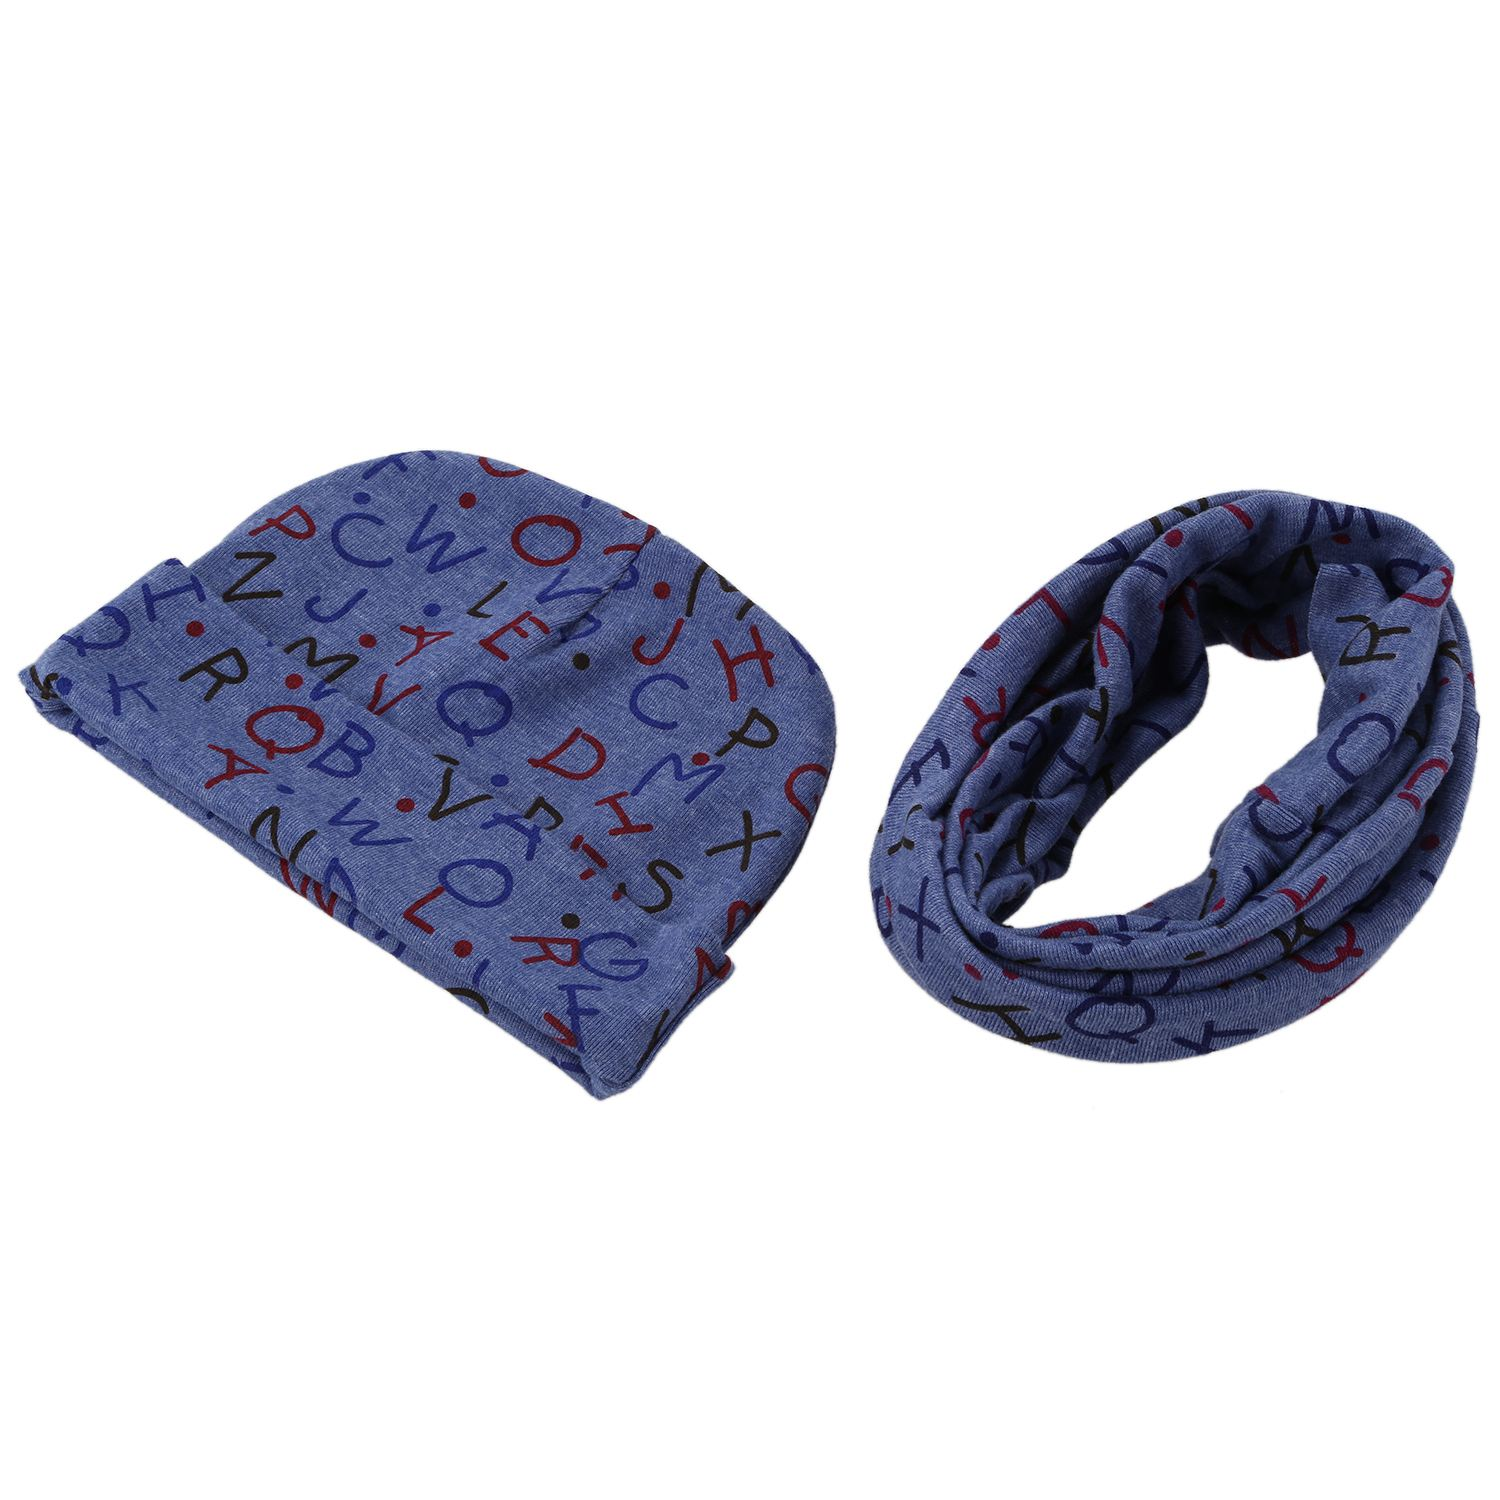 ABWE Best Sale Baby Hat and Scarf Set, Beanie Hat with Snood Scarf Neck Warmer for Infant Kids blue